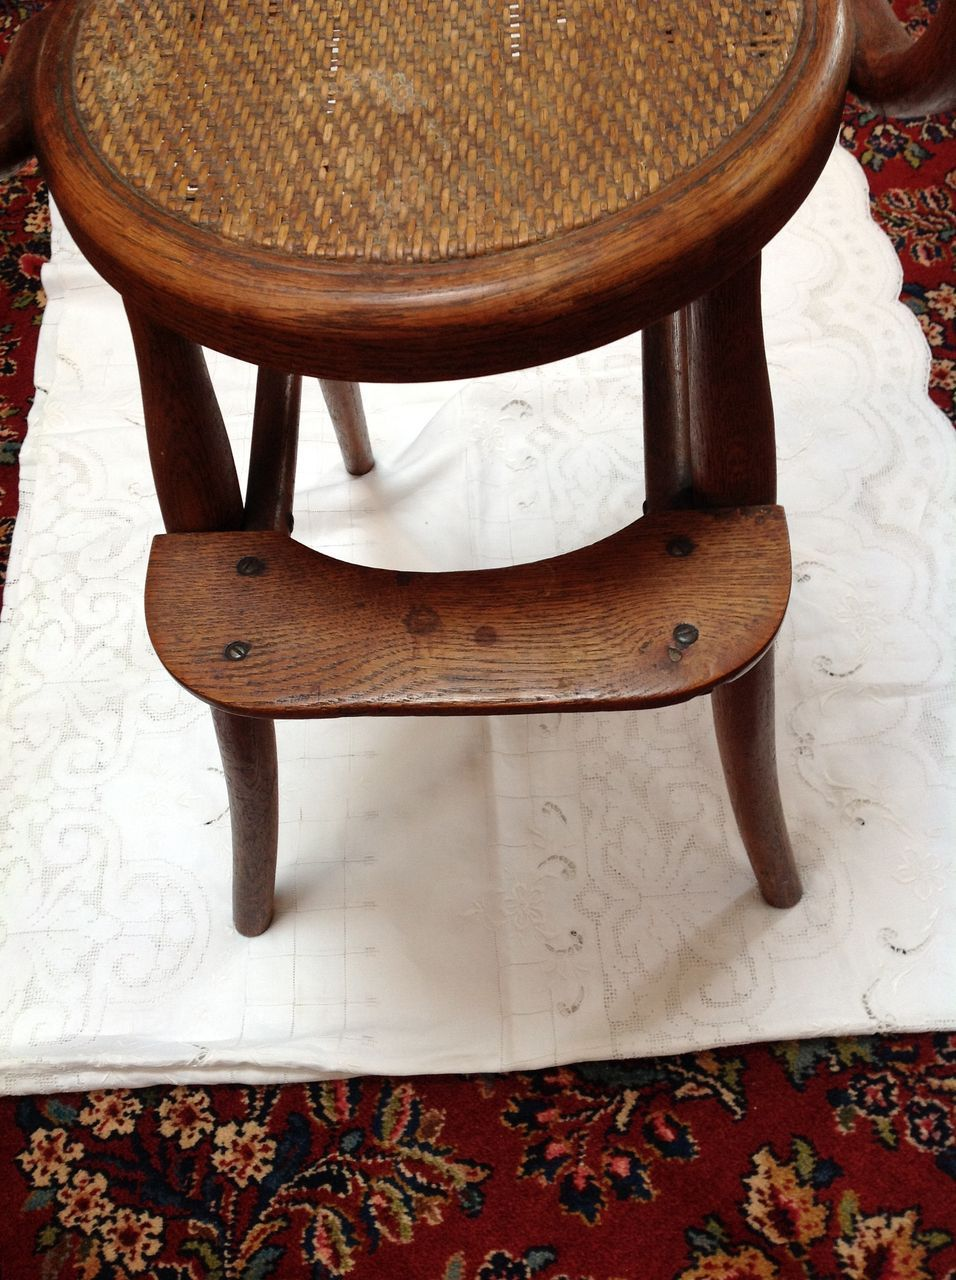 Antique high chair bentwood - Roll Over Large Image To Magnify Click Large Image To Zoom